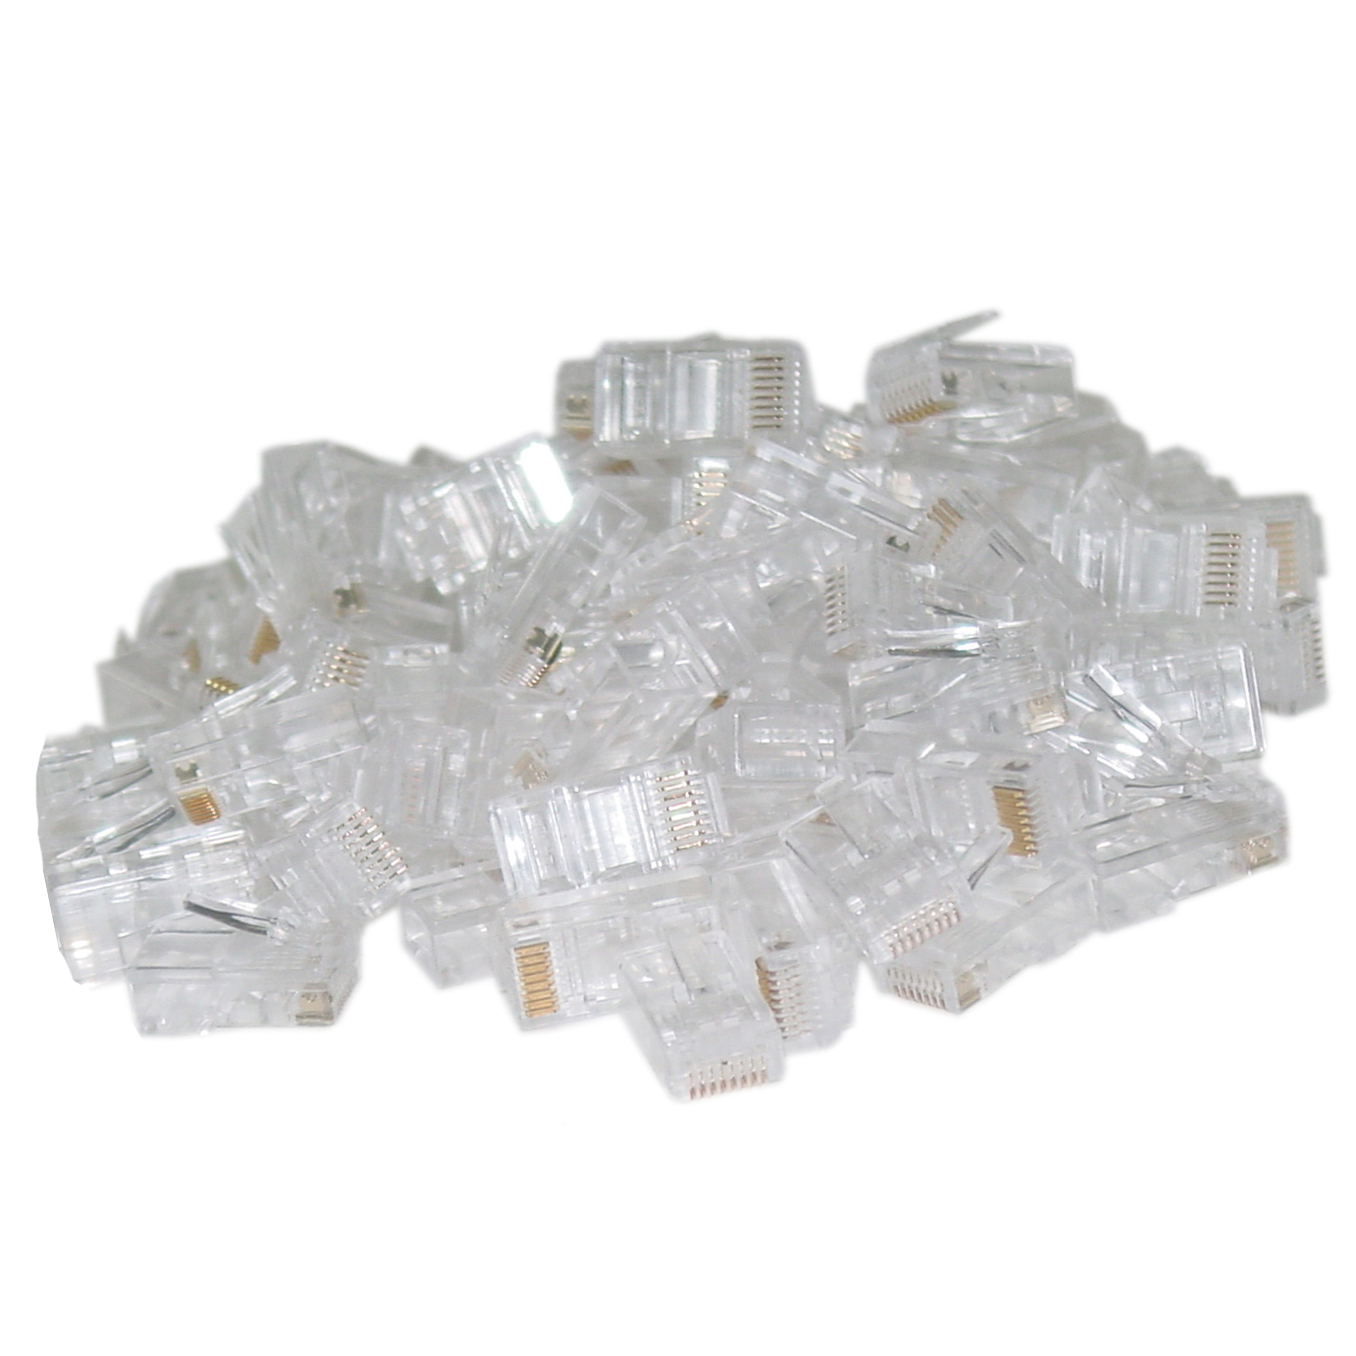 108705 - CAT5e RJ45 Crimp-On Connector Plugs for Stranded Cable - Bag of 100